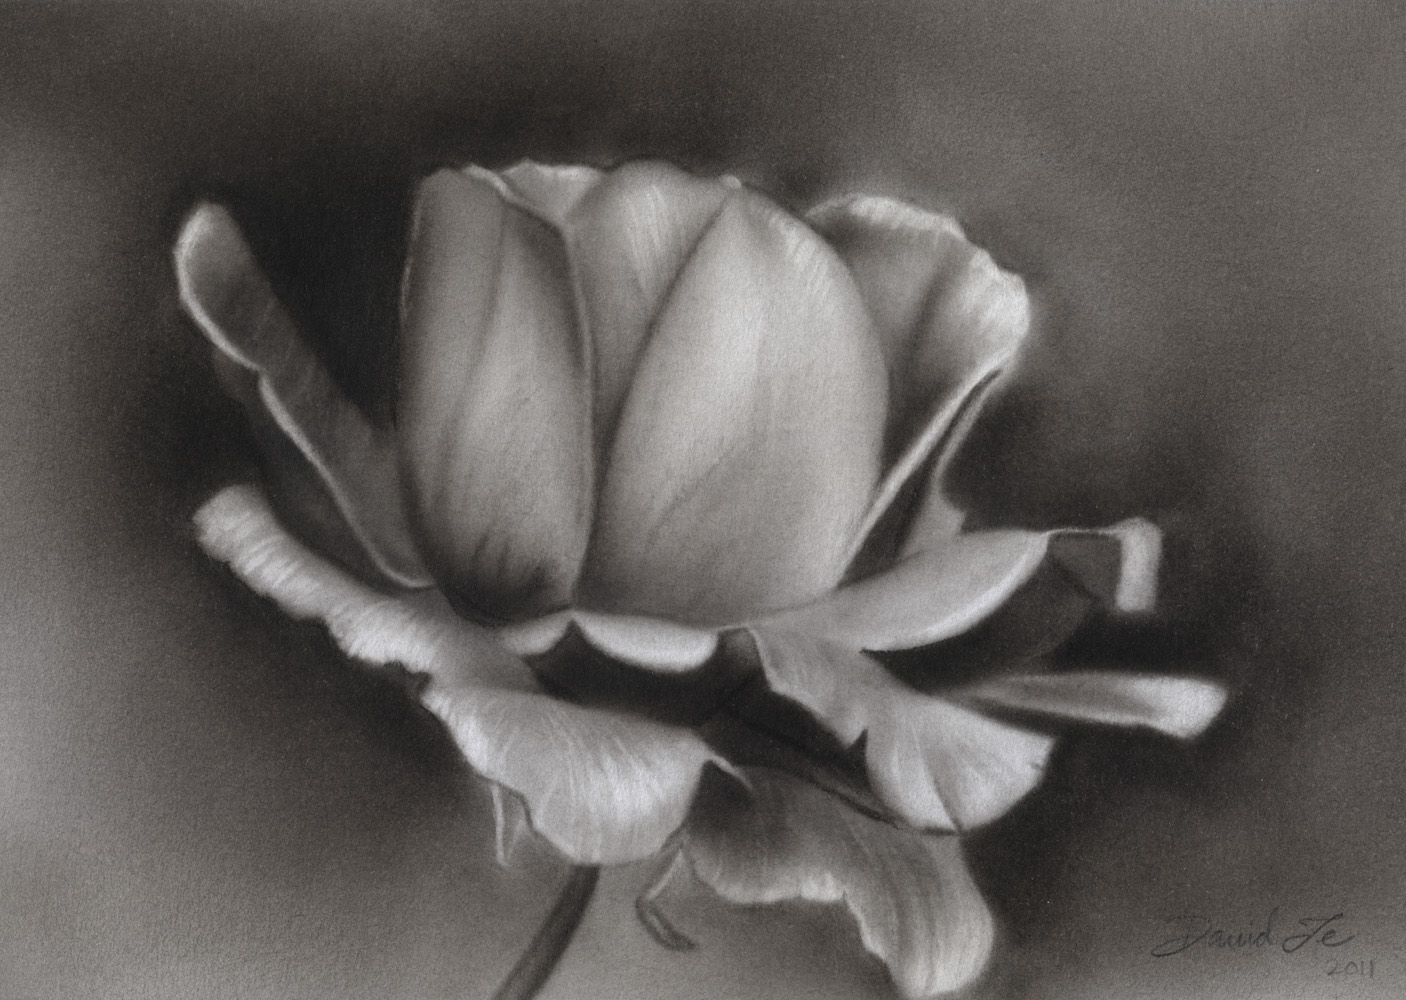 Drawn rose charcoal drawing Blogspot charcoal http sketches sketches